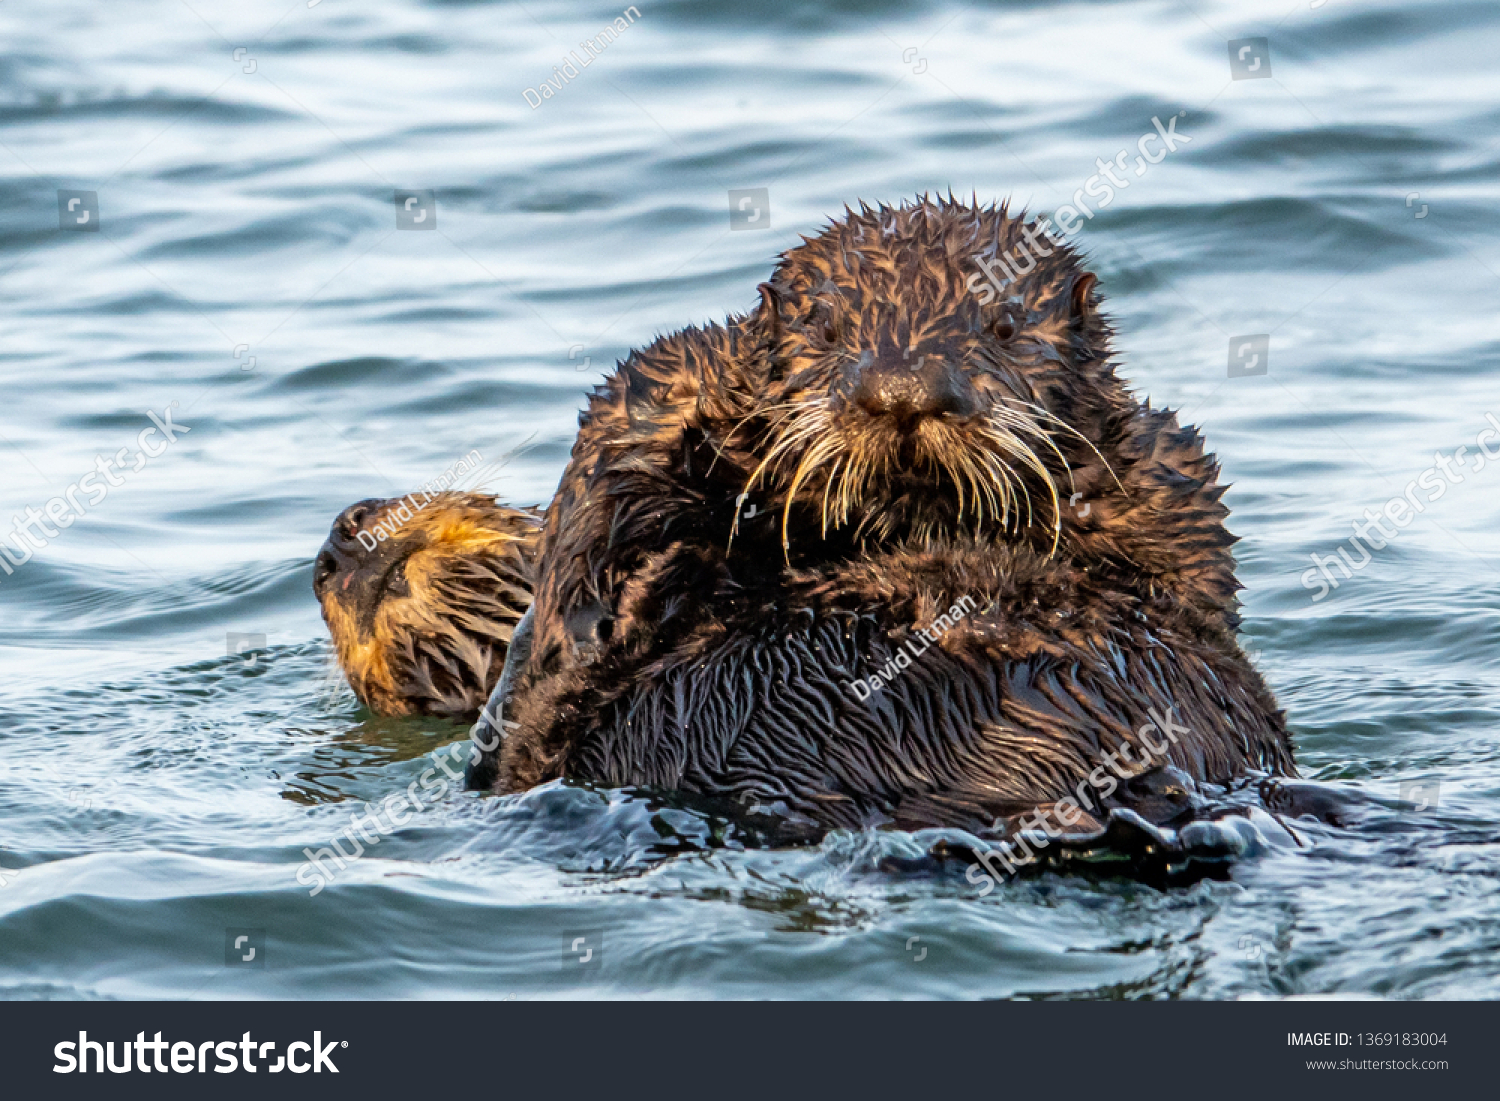 Sea Otter pups wean between the ages of 6 months to 1 year.  This relatively large weaning age pup has yet to leave mother